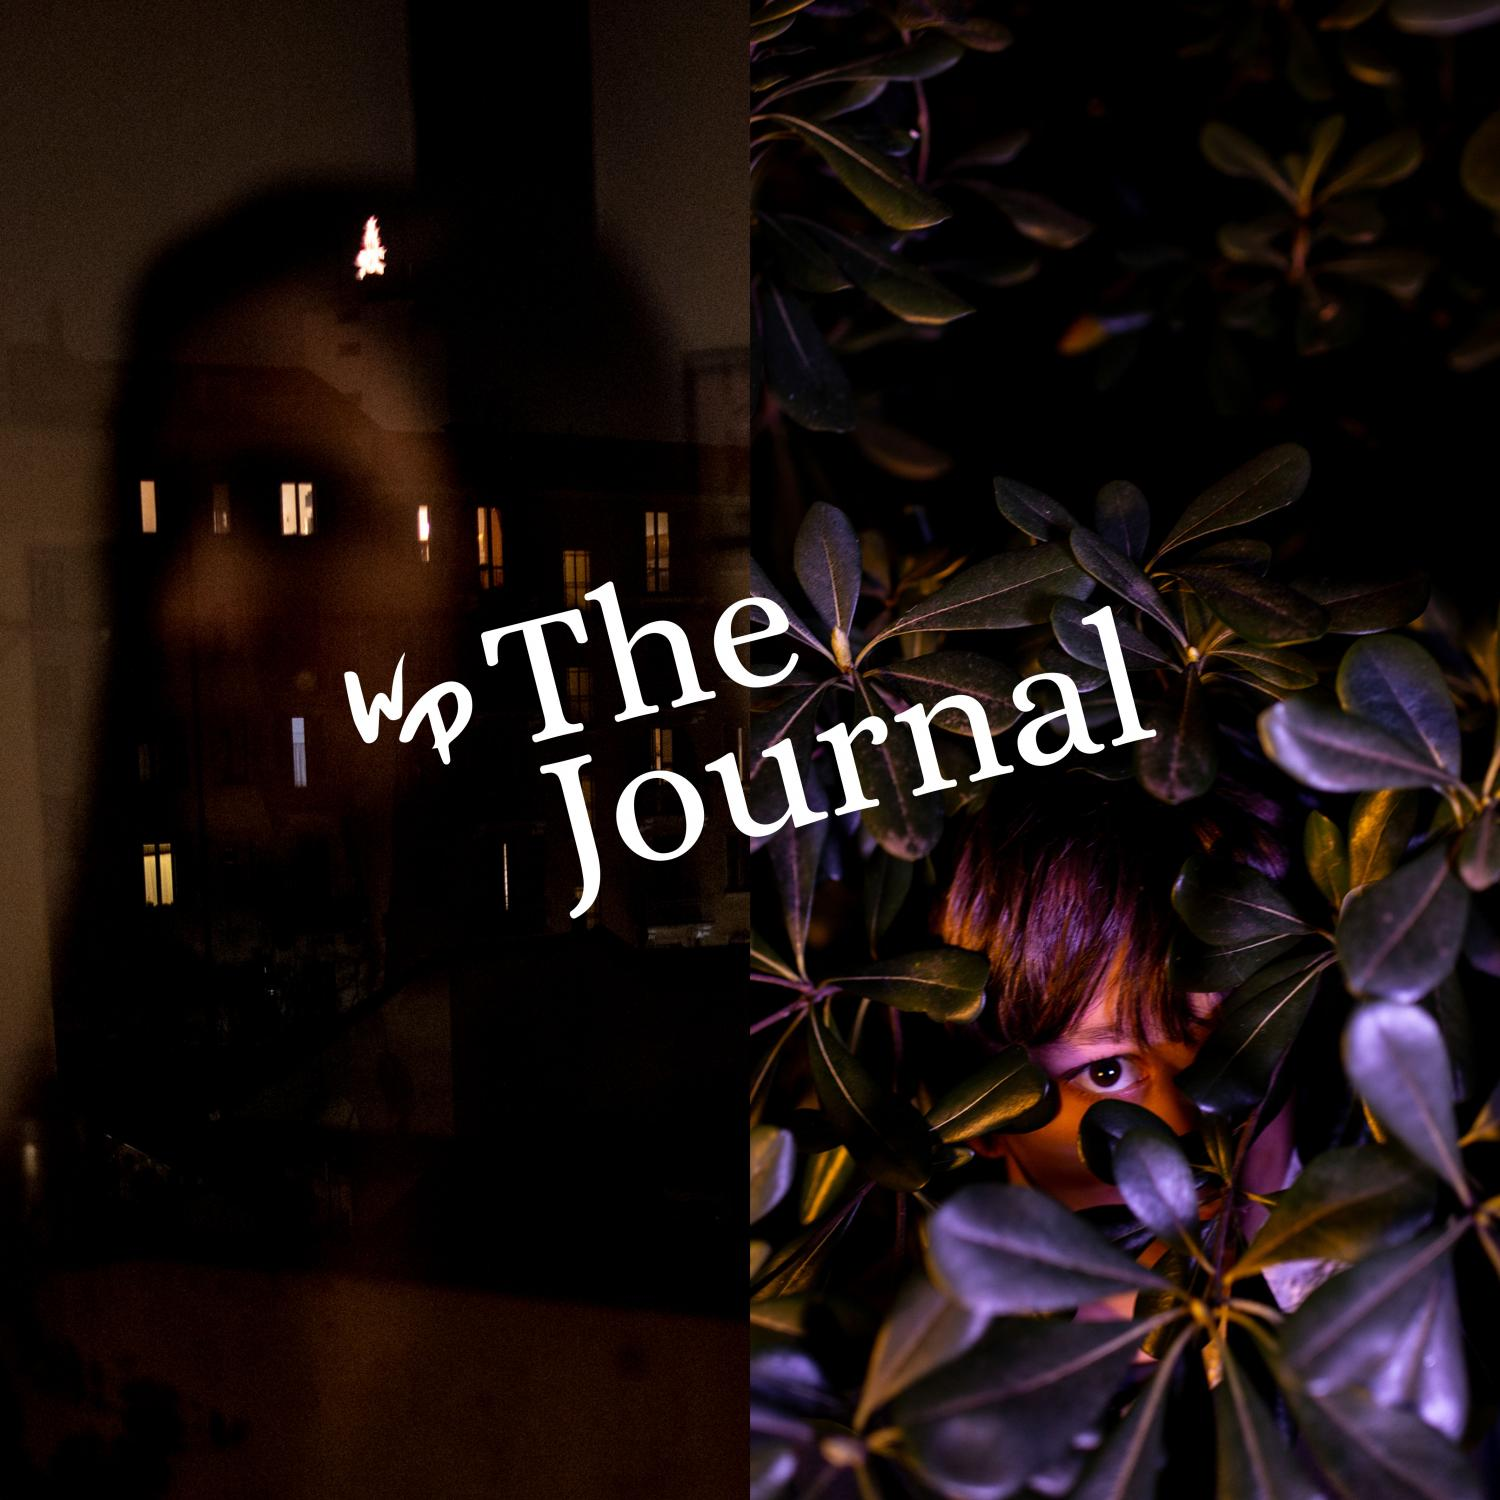 Art and Documentary Photography - Loading WPthejournal.jpg